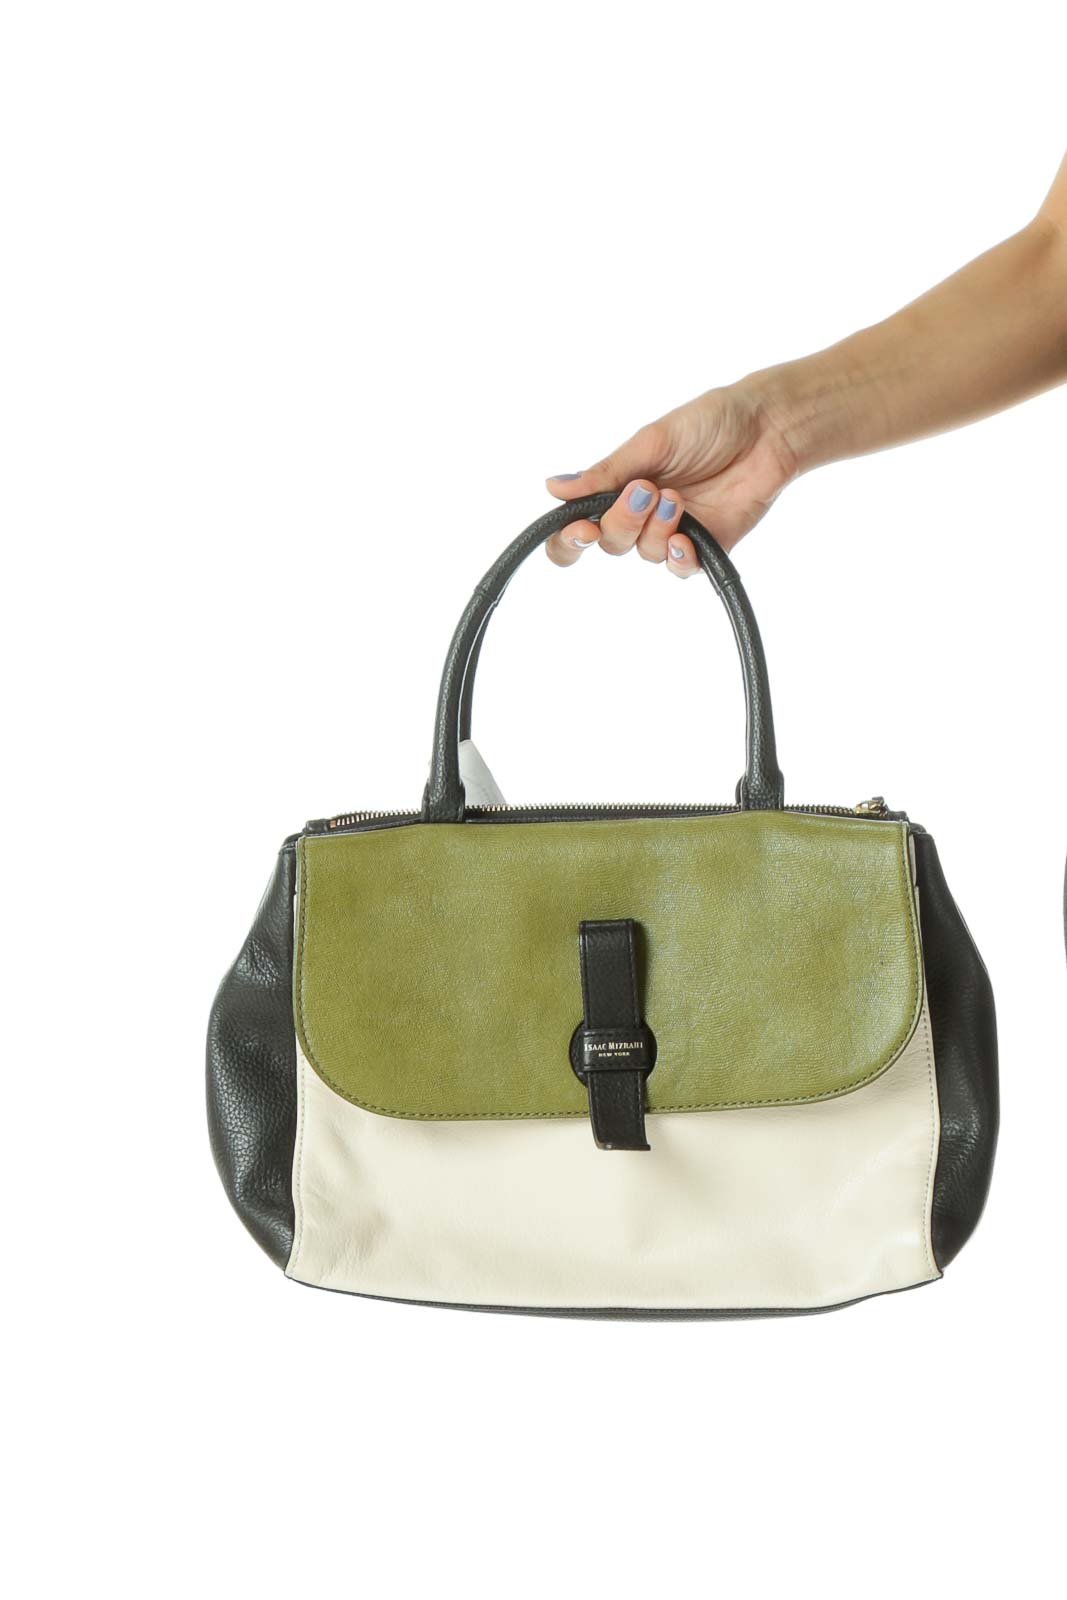 Green/Black/Cream Gold Hardware Satchel Front